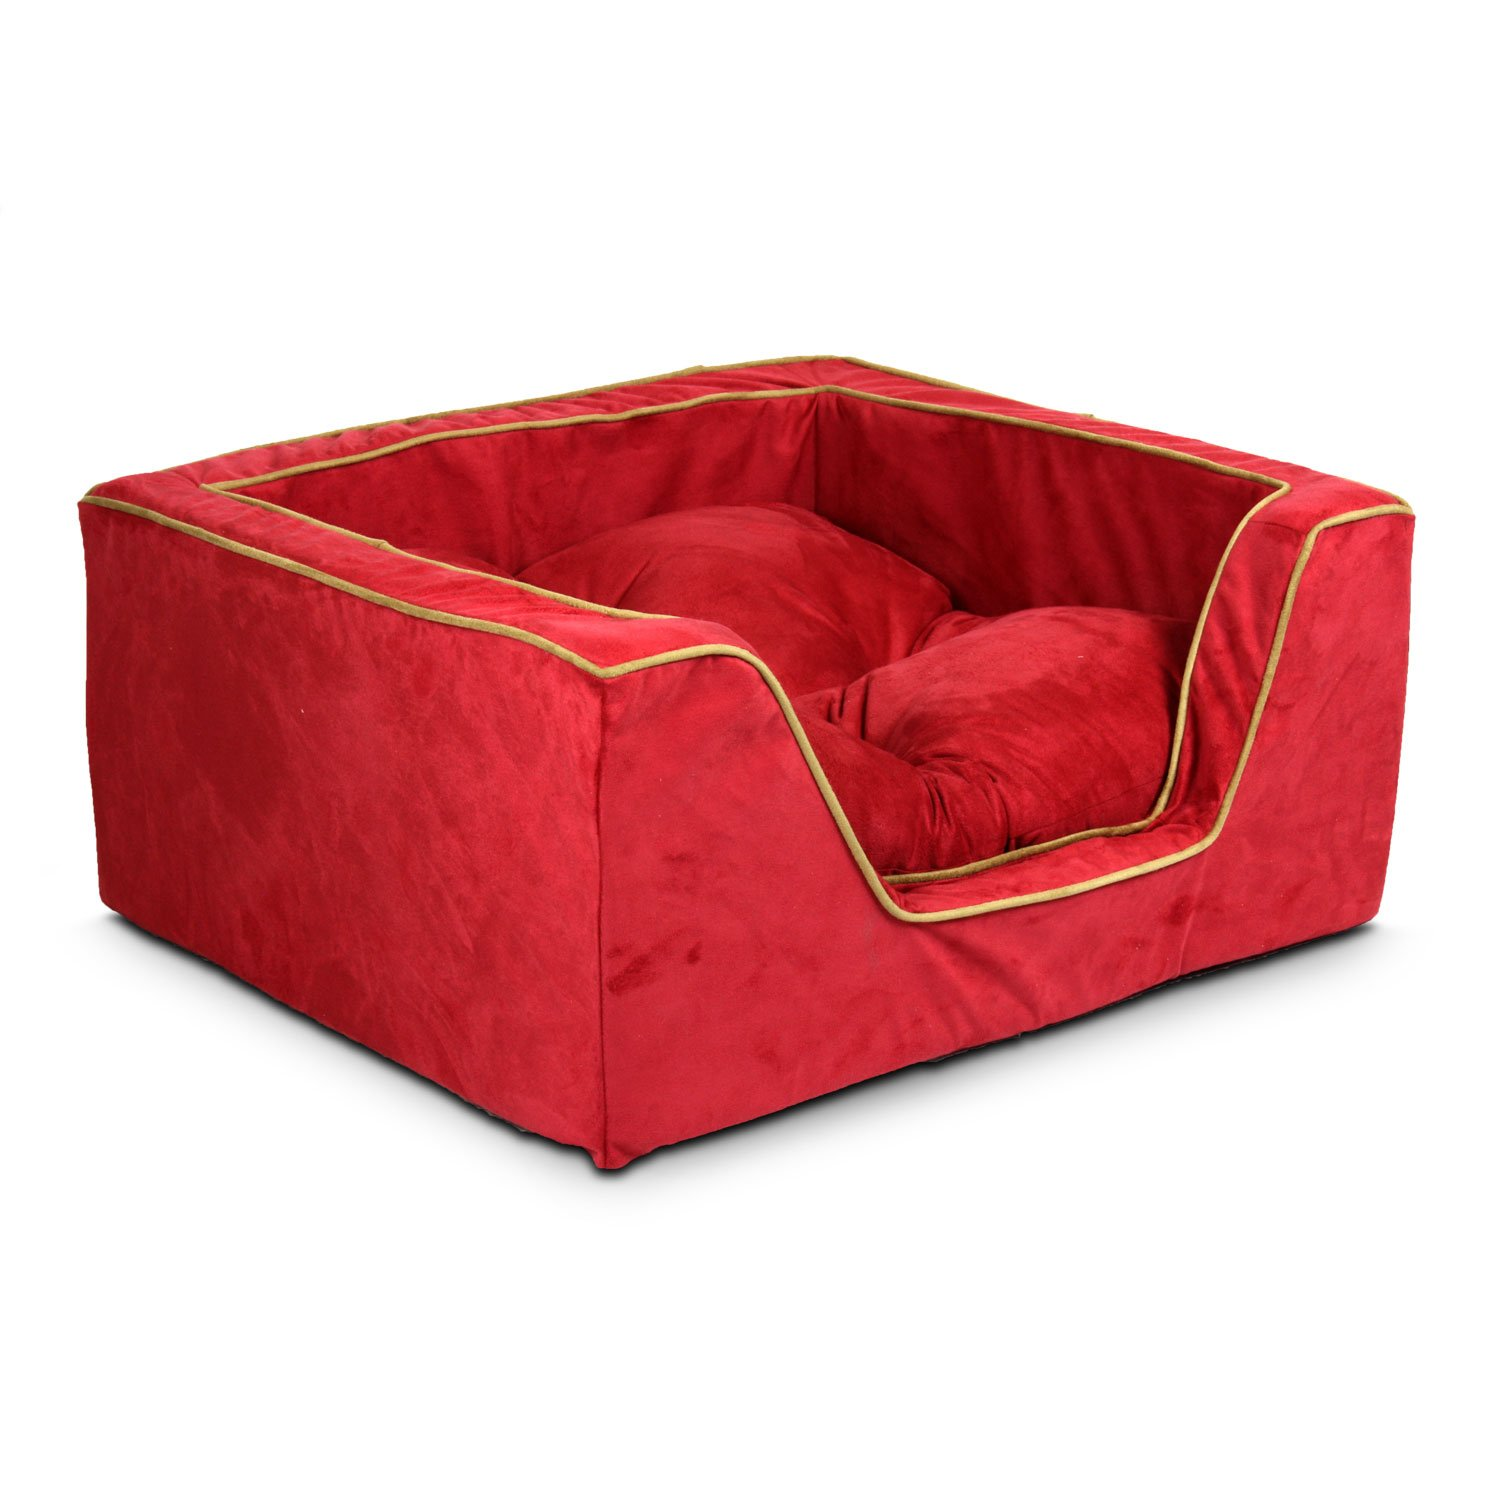 Snoozer Luxury Square Bed in Red with Camel Cording 31.5 L x 27.5 W XLarge Red  Tan